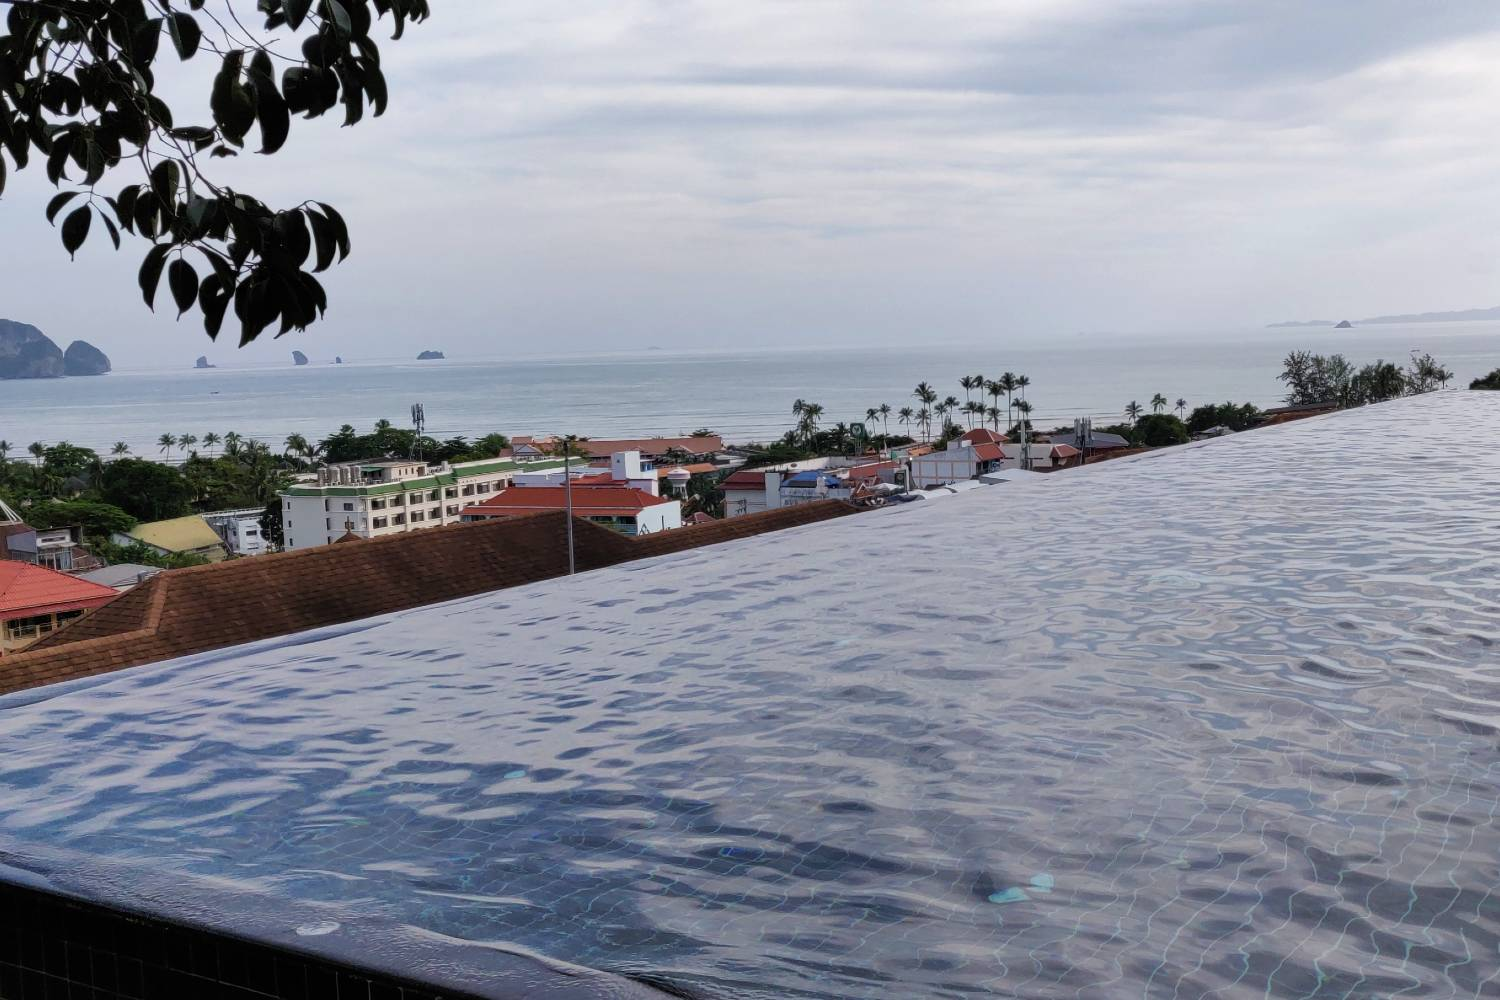 The infinity pool of the Avani Ao Nang Cliff Krabi Resort